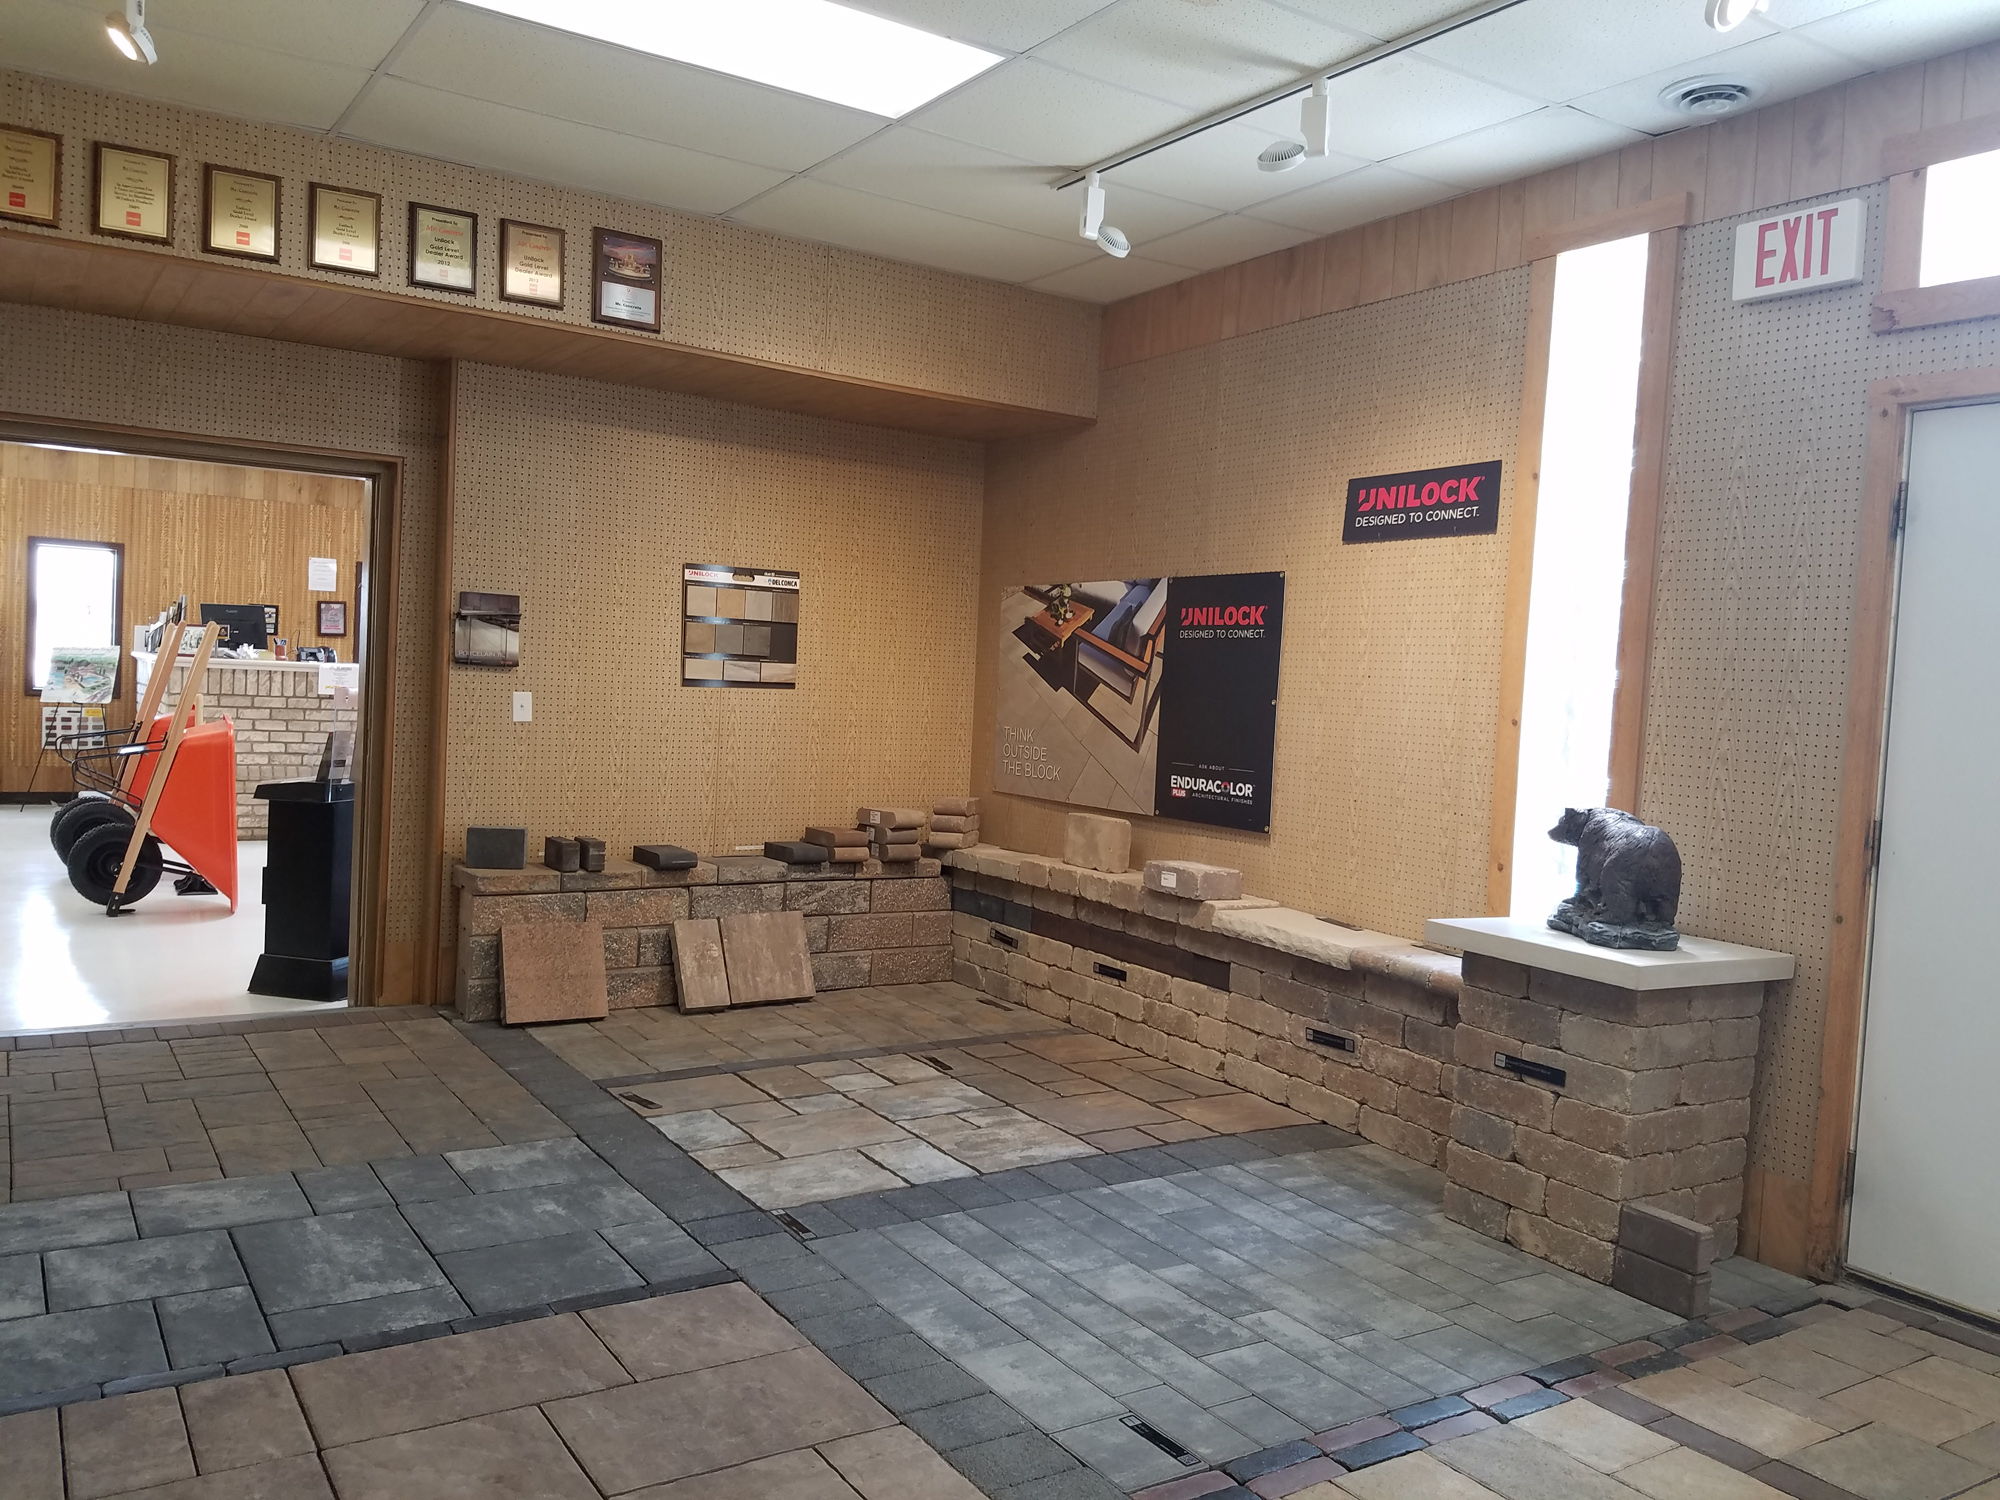 Mr concrete builders supply we go where you go in addition enjoy a cozy tour of our gas fireplaces and fireplace inserts also dont miss seeing our interior flooring options with florida ceramic tile dailygadgetfo Gallery